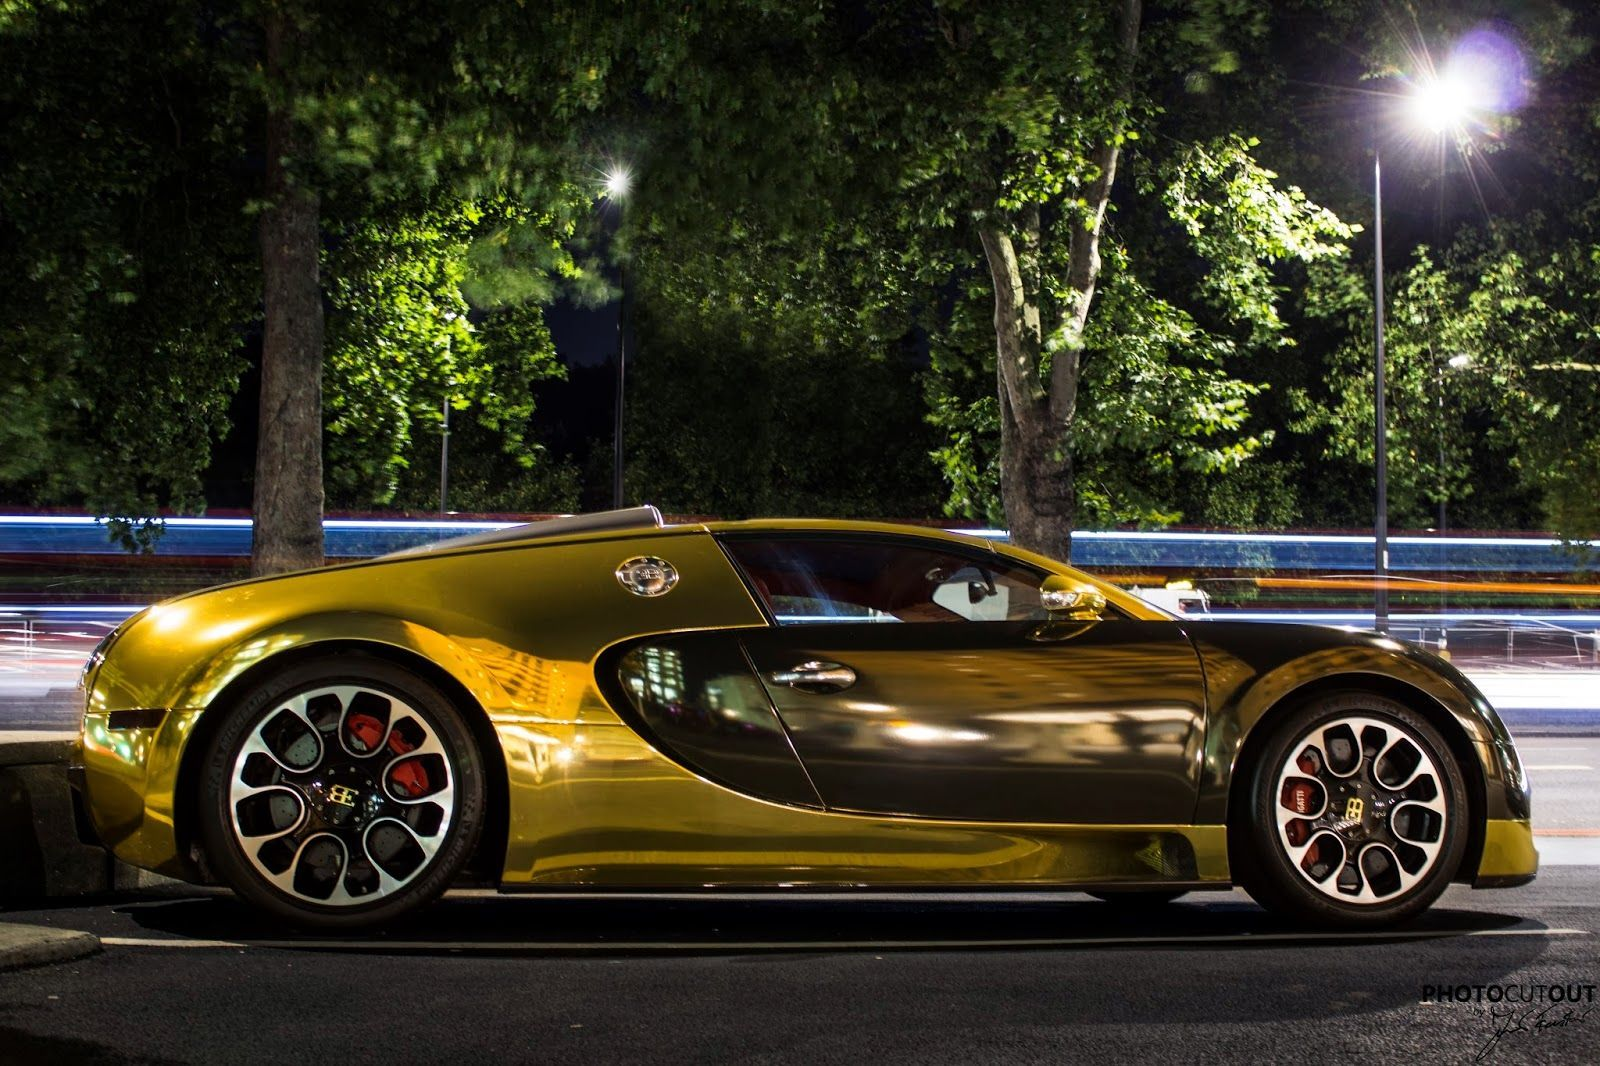 Gold Car Wallpapers: Gold Bugatti Veyron Car Wallpapers